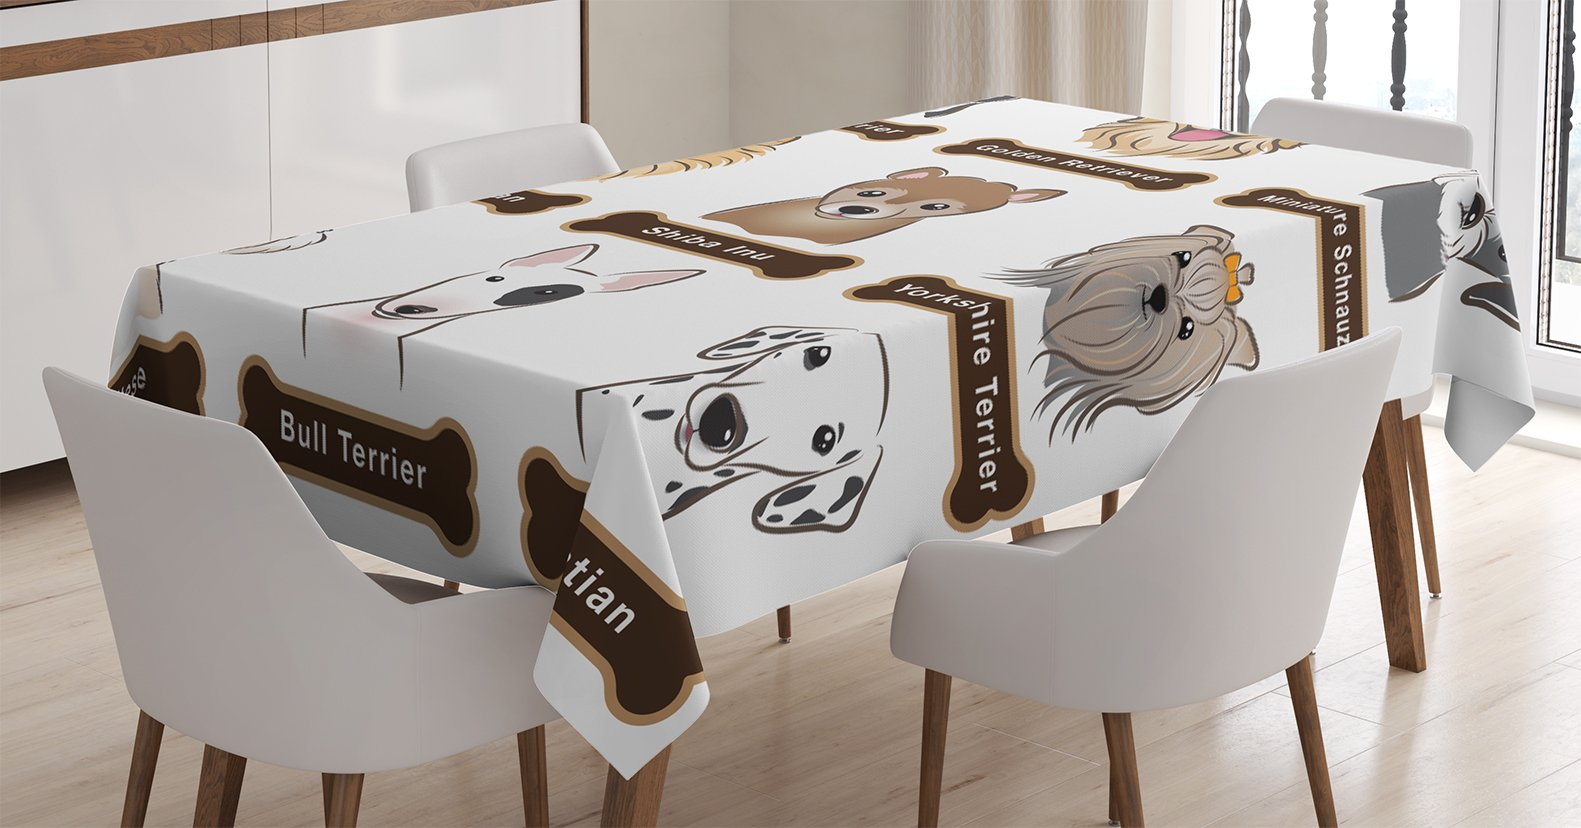 Ambesonne Dog Lover Decor Tablecloth, Various Type of Dogs Nameplate Boston Terrier Domestic Animal Faithful Loyal, Rectangular Table Cover for Dining Room Kitchen, 52x70 inch, Grey Cream White by Ambesonne